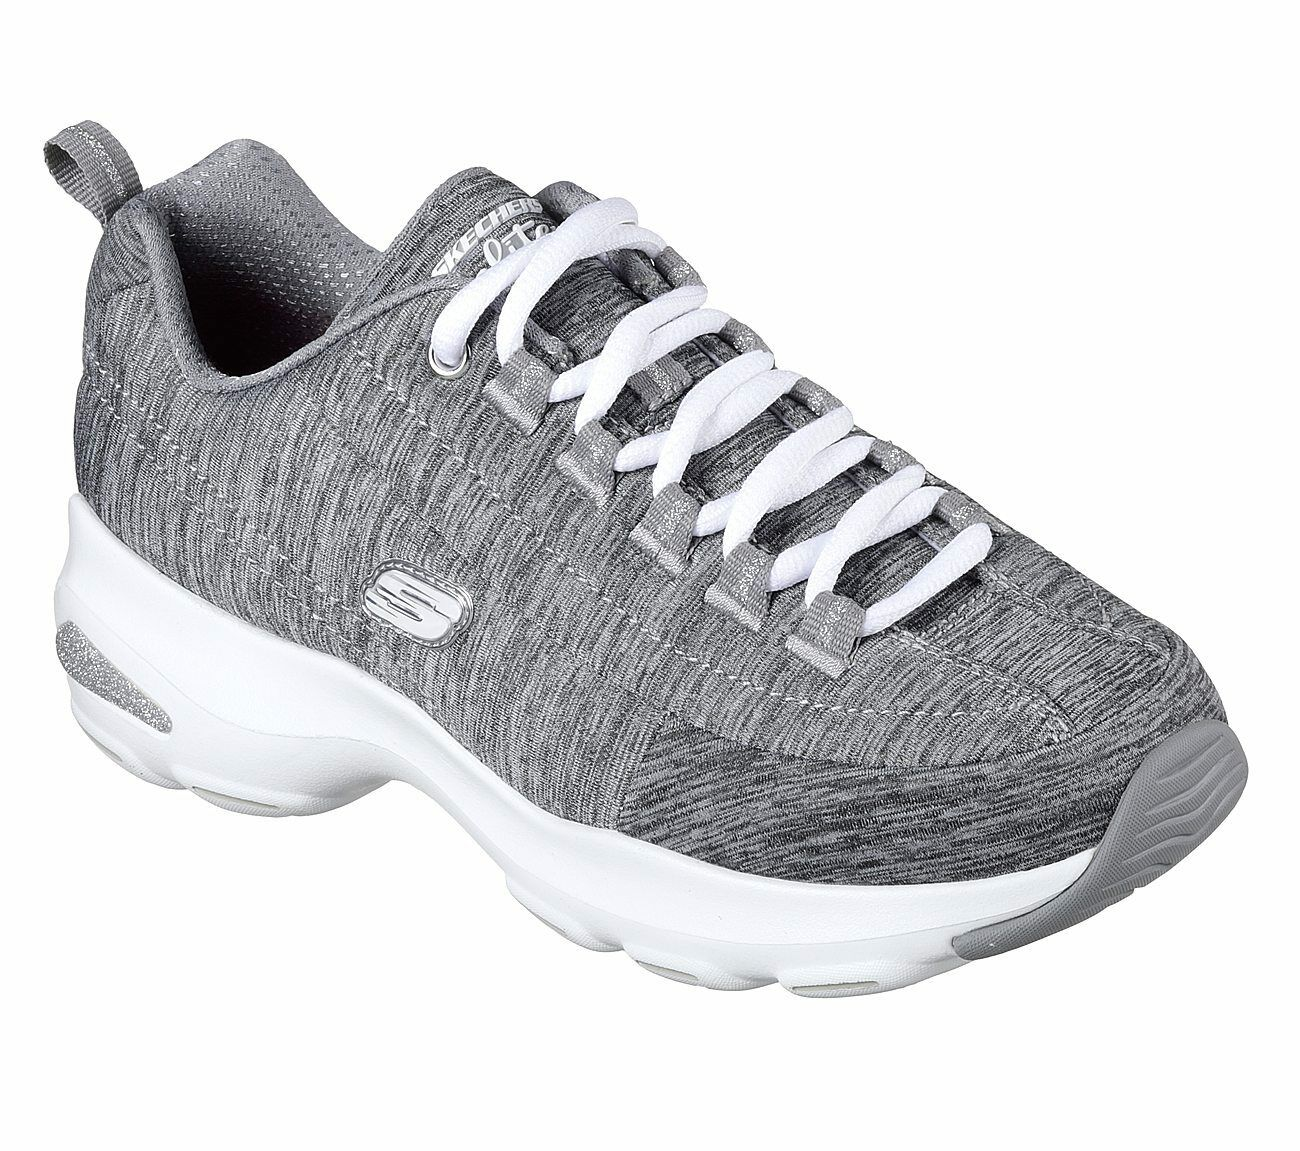 Skechers D'Taschenlampe Ultra meditative trainers Memory Foam klobig Mode Damen